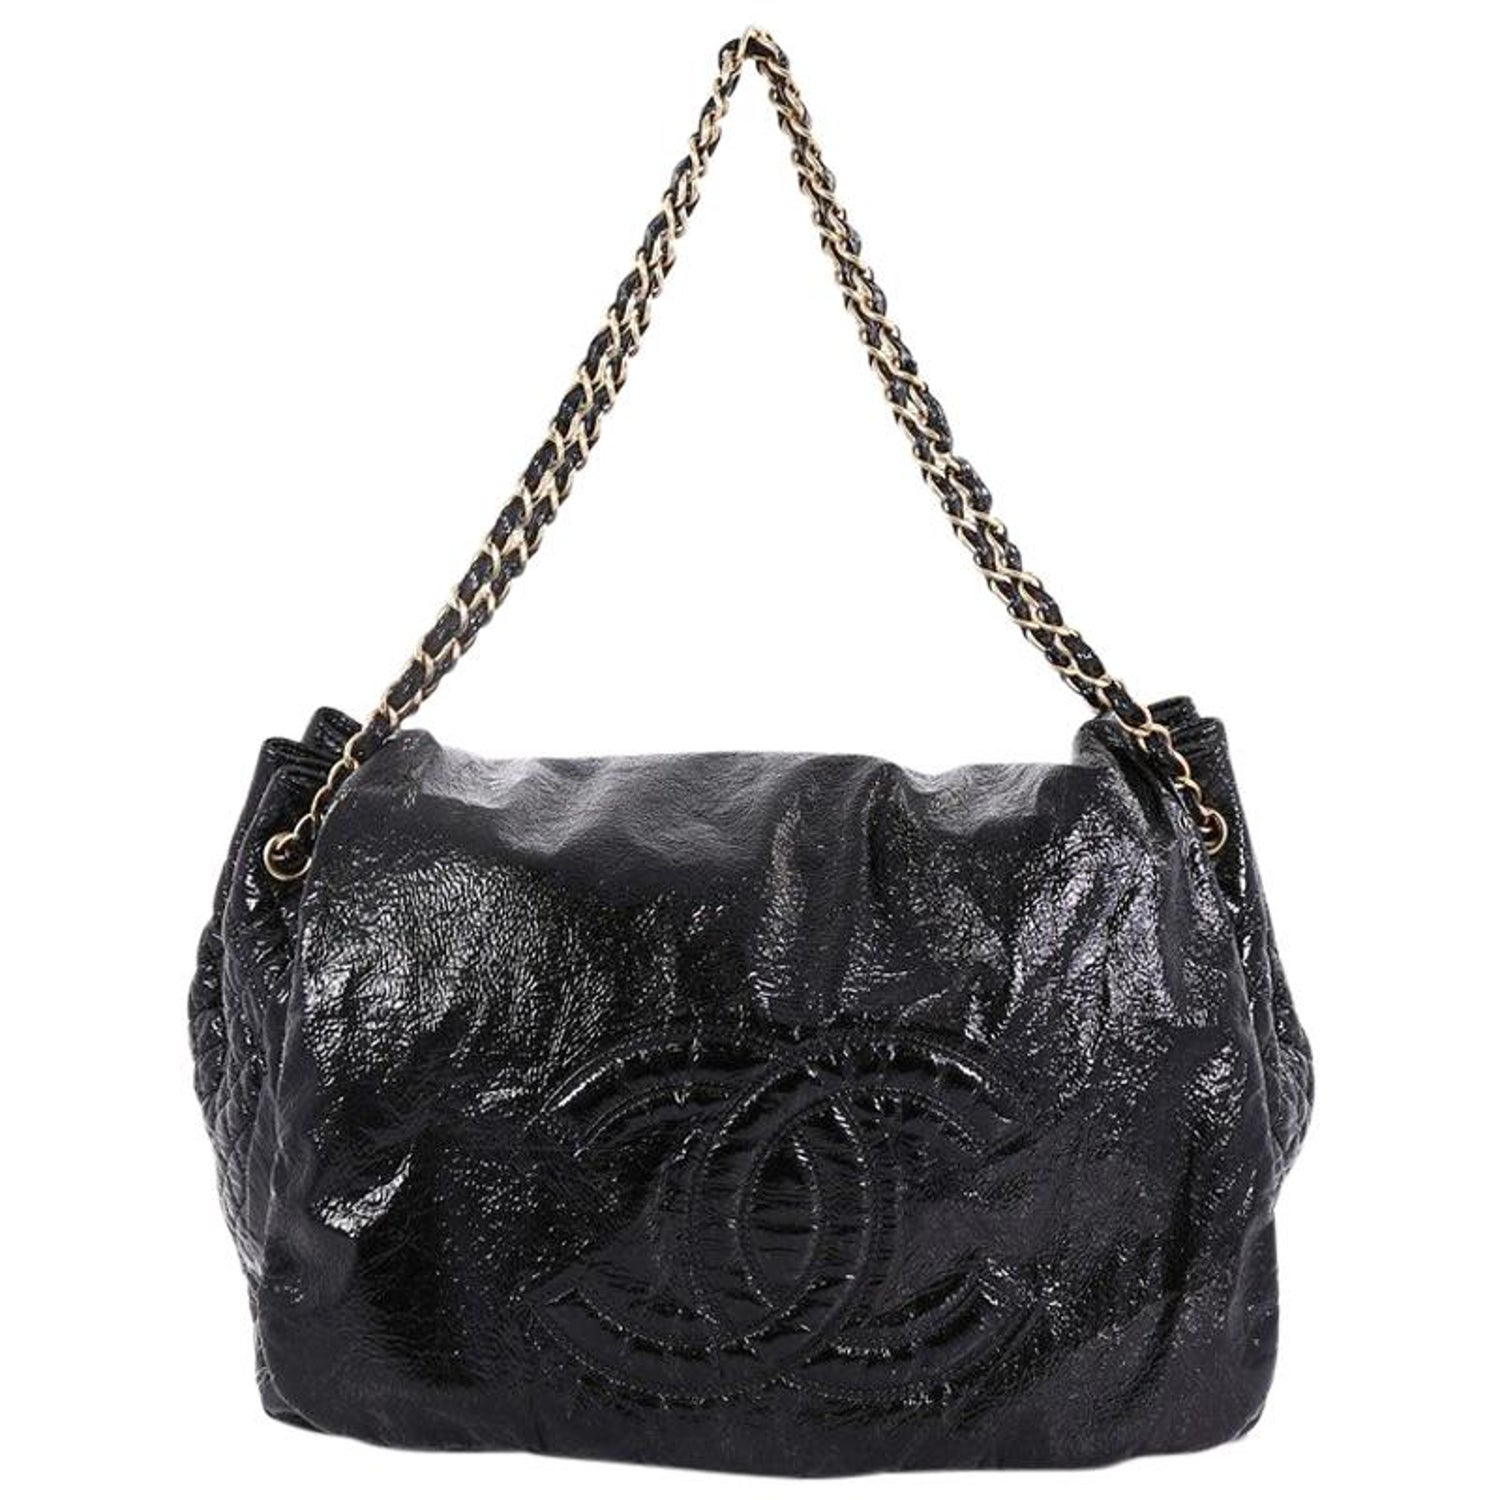 5cdb3de077f6 Chanel Rock and Chain Flap Bag Patent XL For Sale at 1stdibs